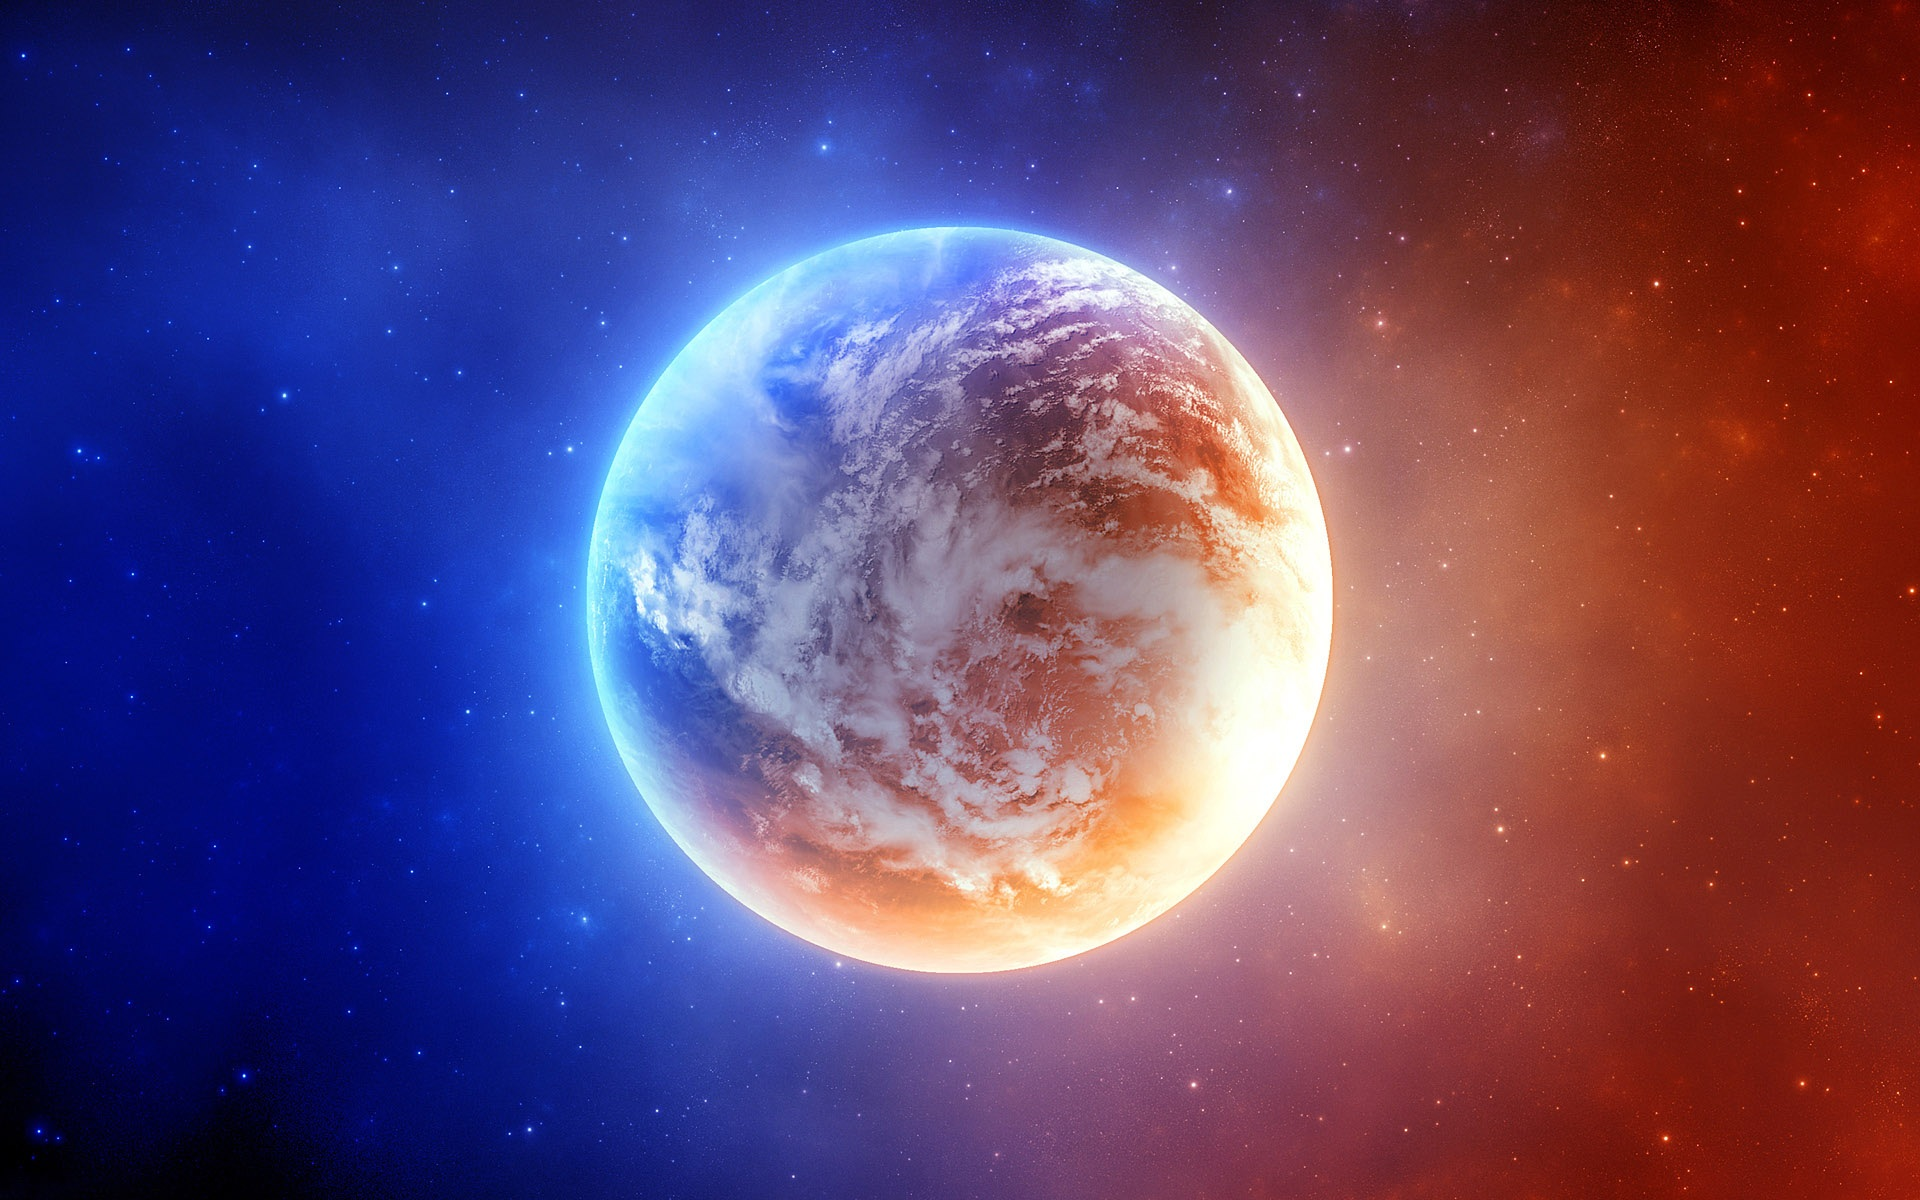 Wallpaper Blue And Orange Light Of The Earth 1920x1200 Hd